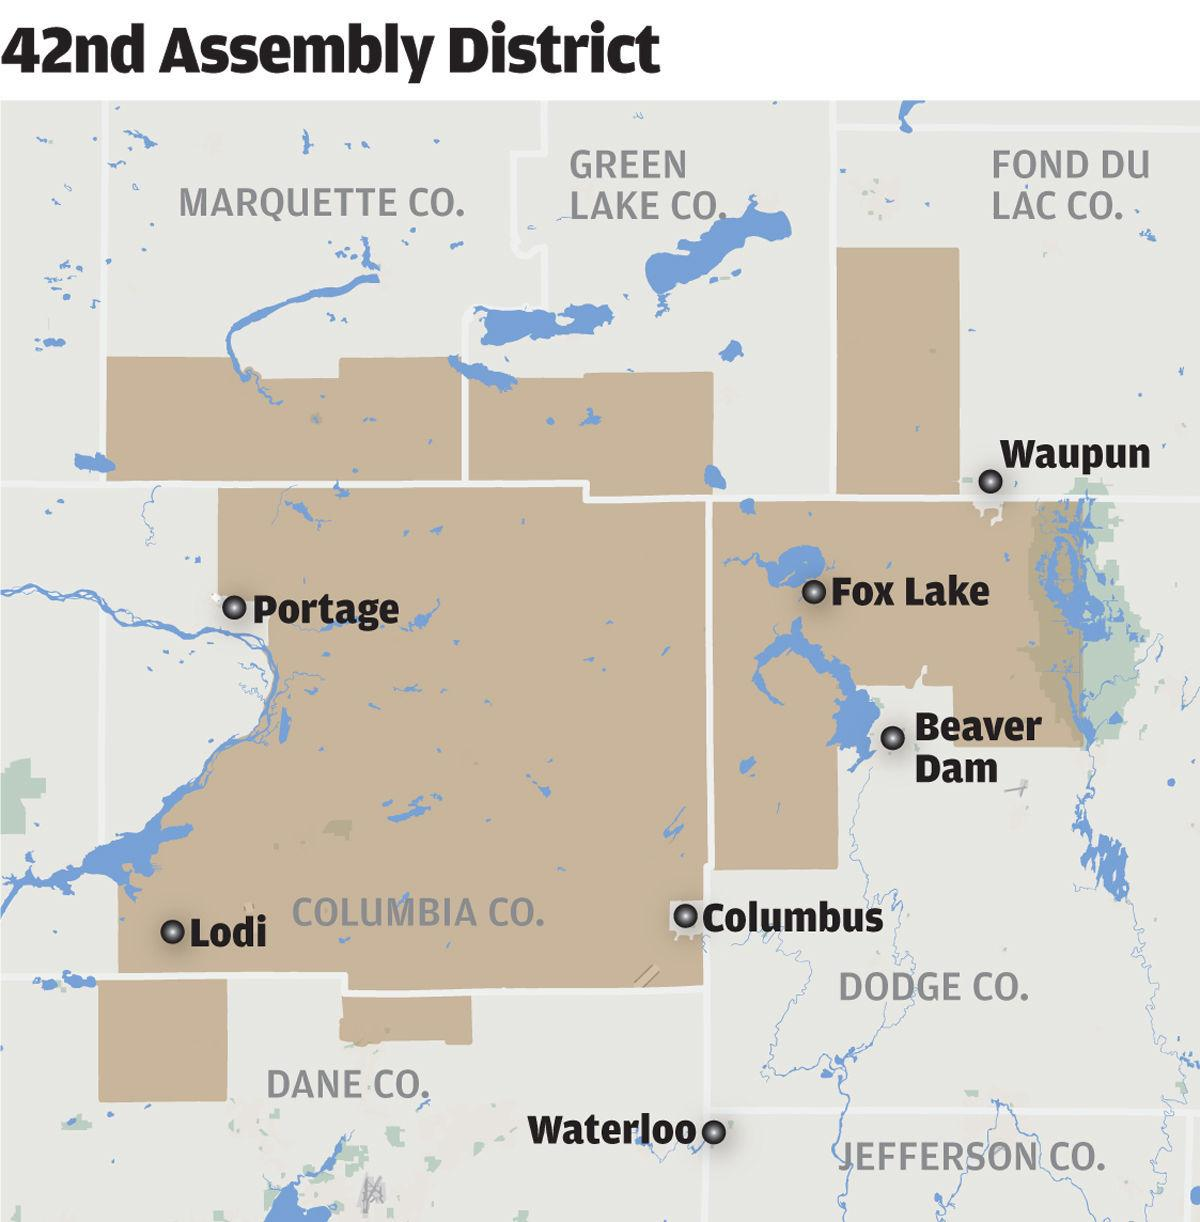 Wisconsin 42nd Assembly District June 2018 (copy)